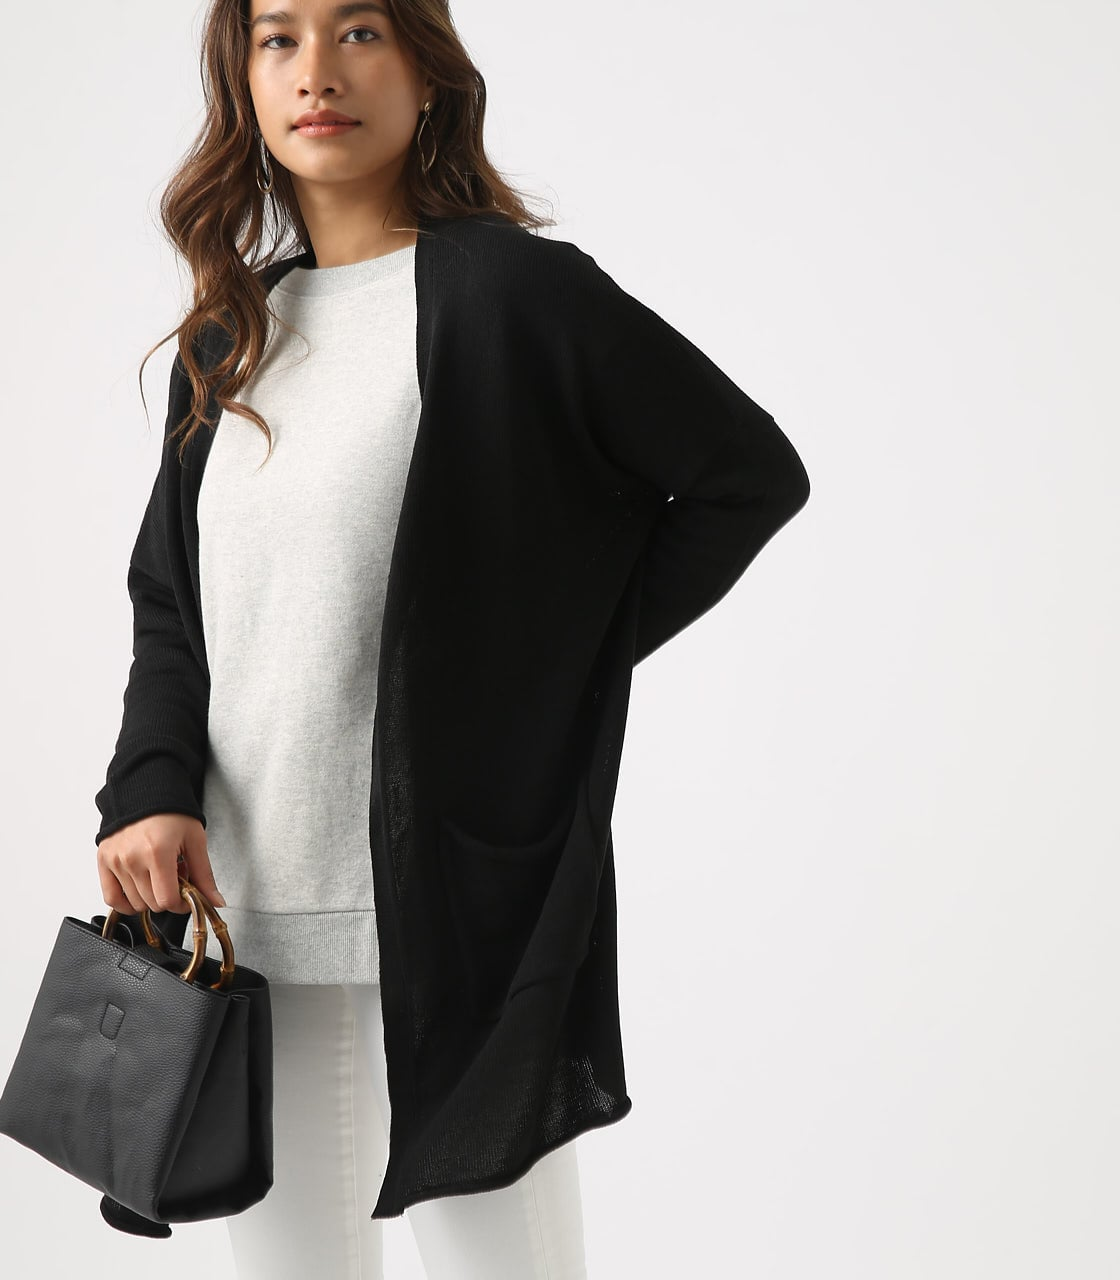 SHEER KNIT CARDIGAN 詳細画像 BLK 2